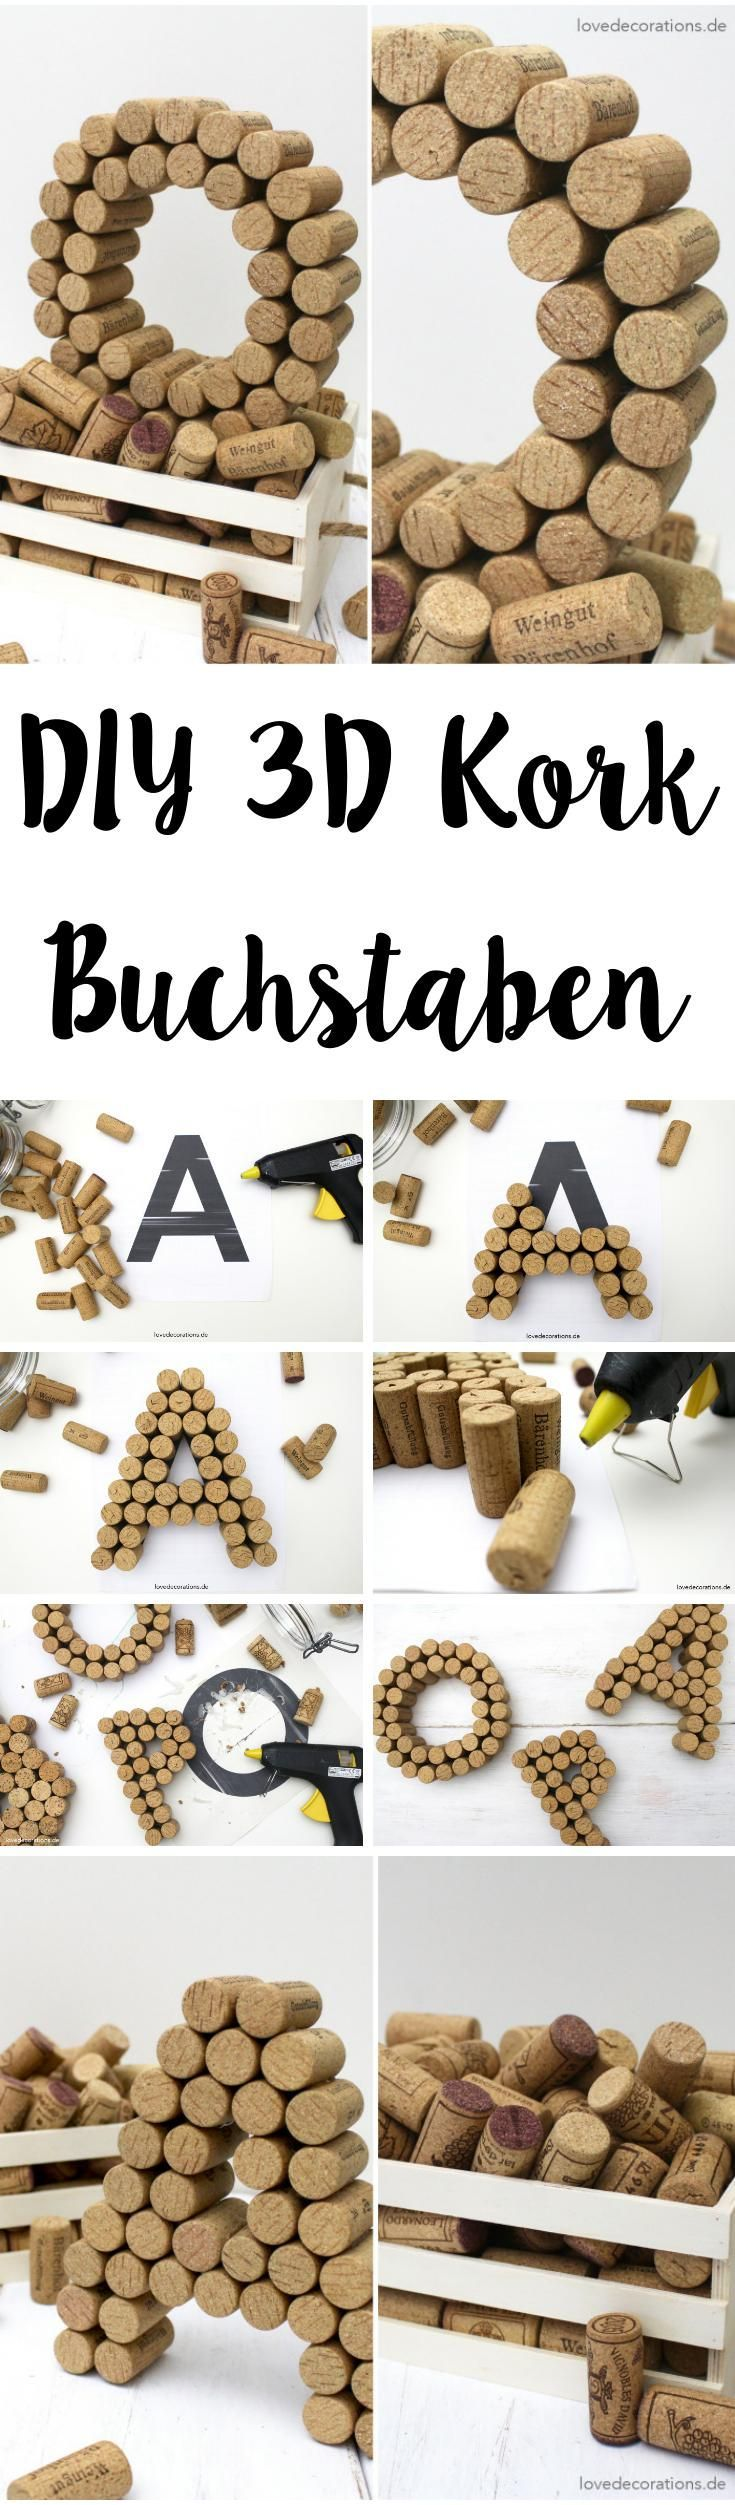 diy 3d buchstaben aus korken korken buchstaben und bastelideen. Black Bedroom Furniture Sets. Home Design Ideas